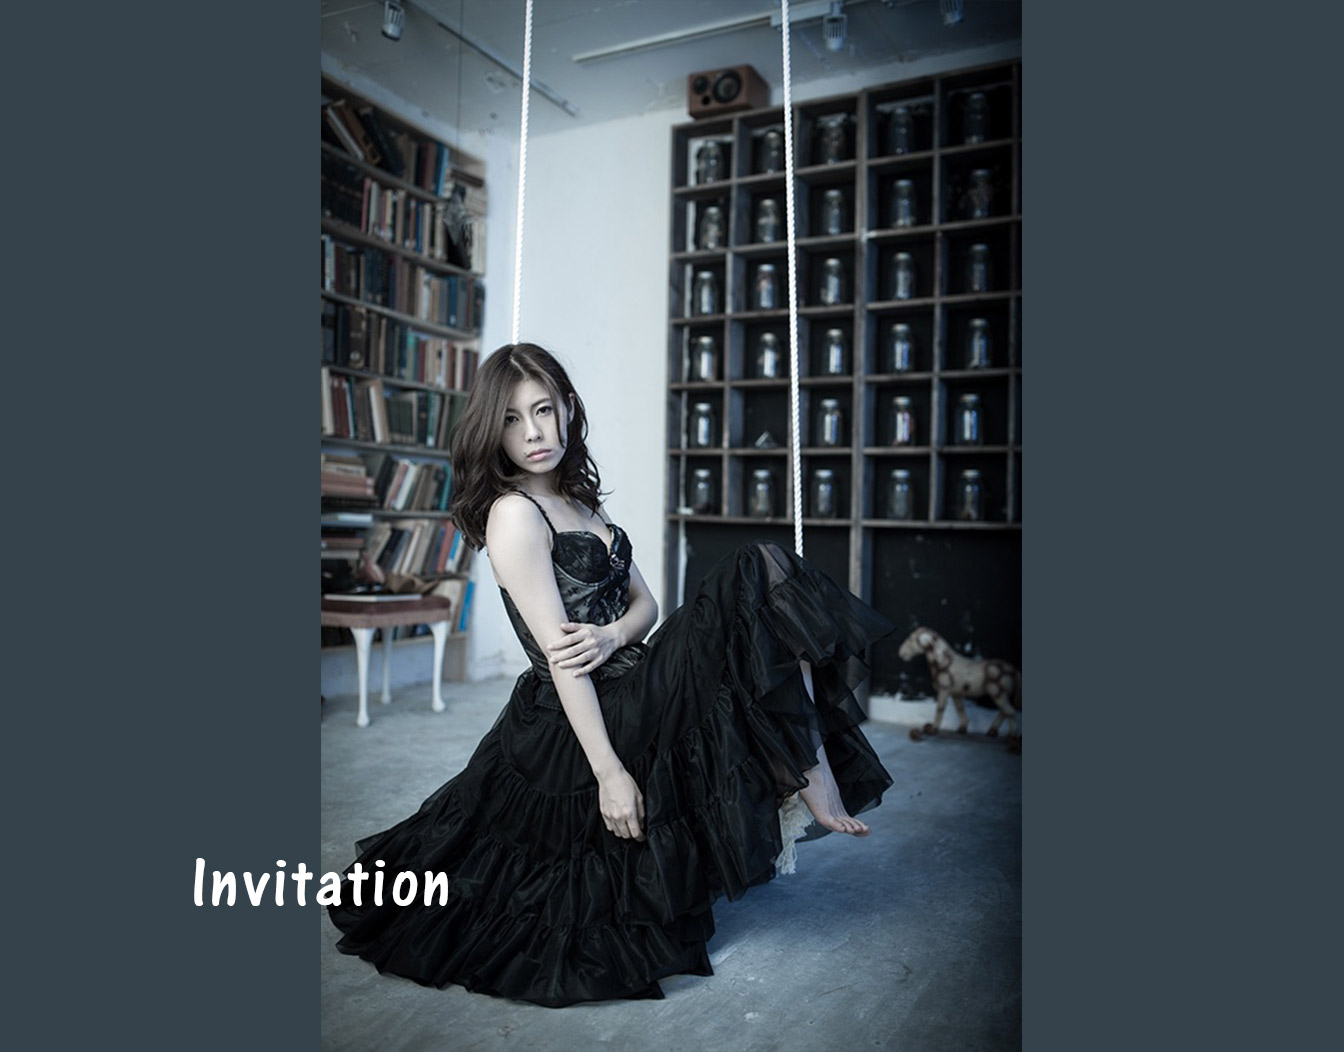 Asian woman posing on invitation for house-warming